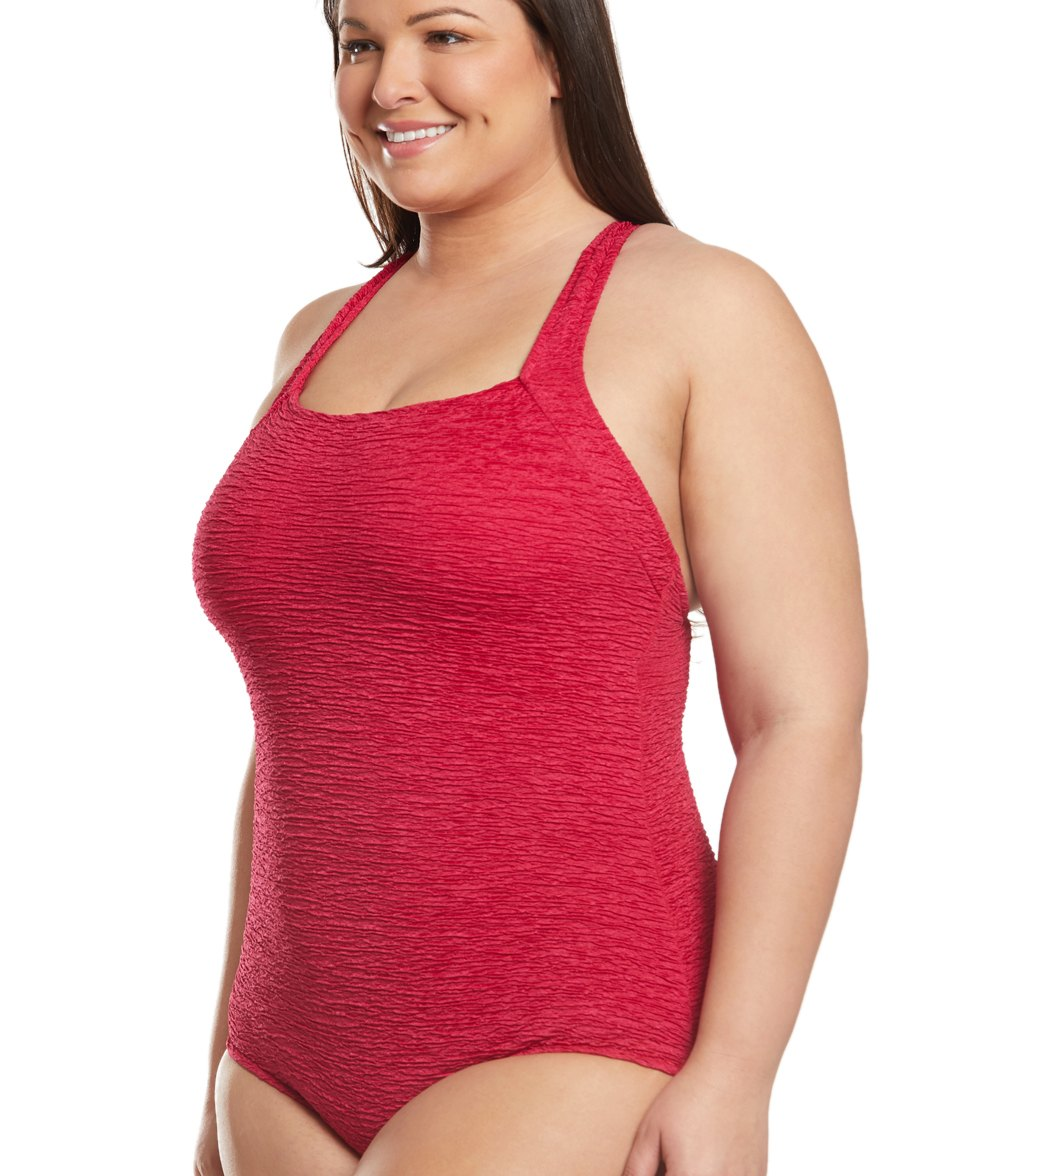 0ae3571277 Penbrooke Krinkle Plus Size Chlorine Resistant One Piece Active Back  Swimsuit